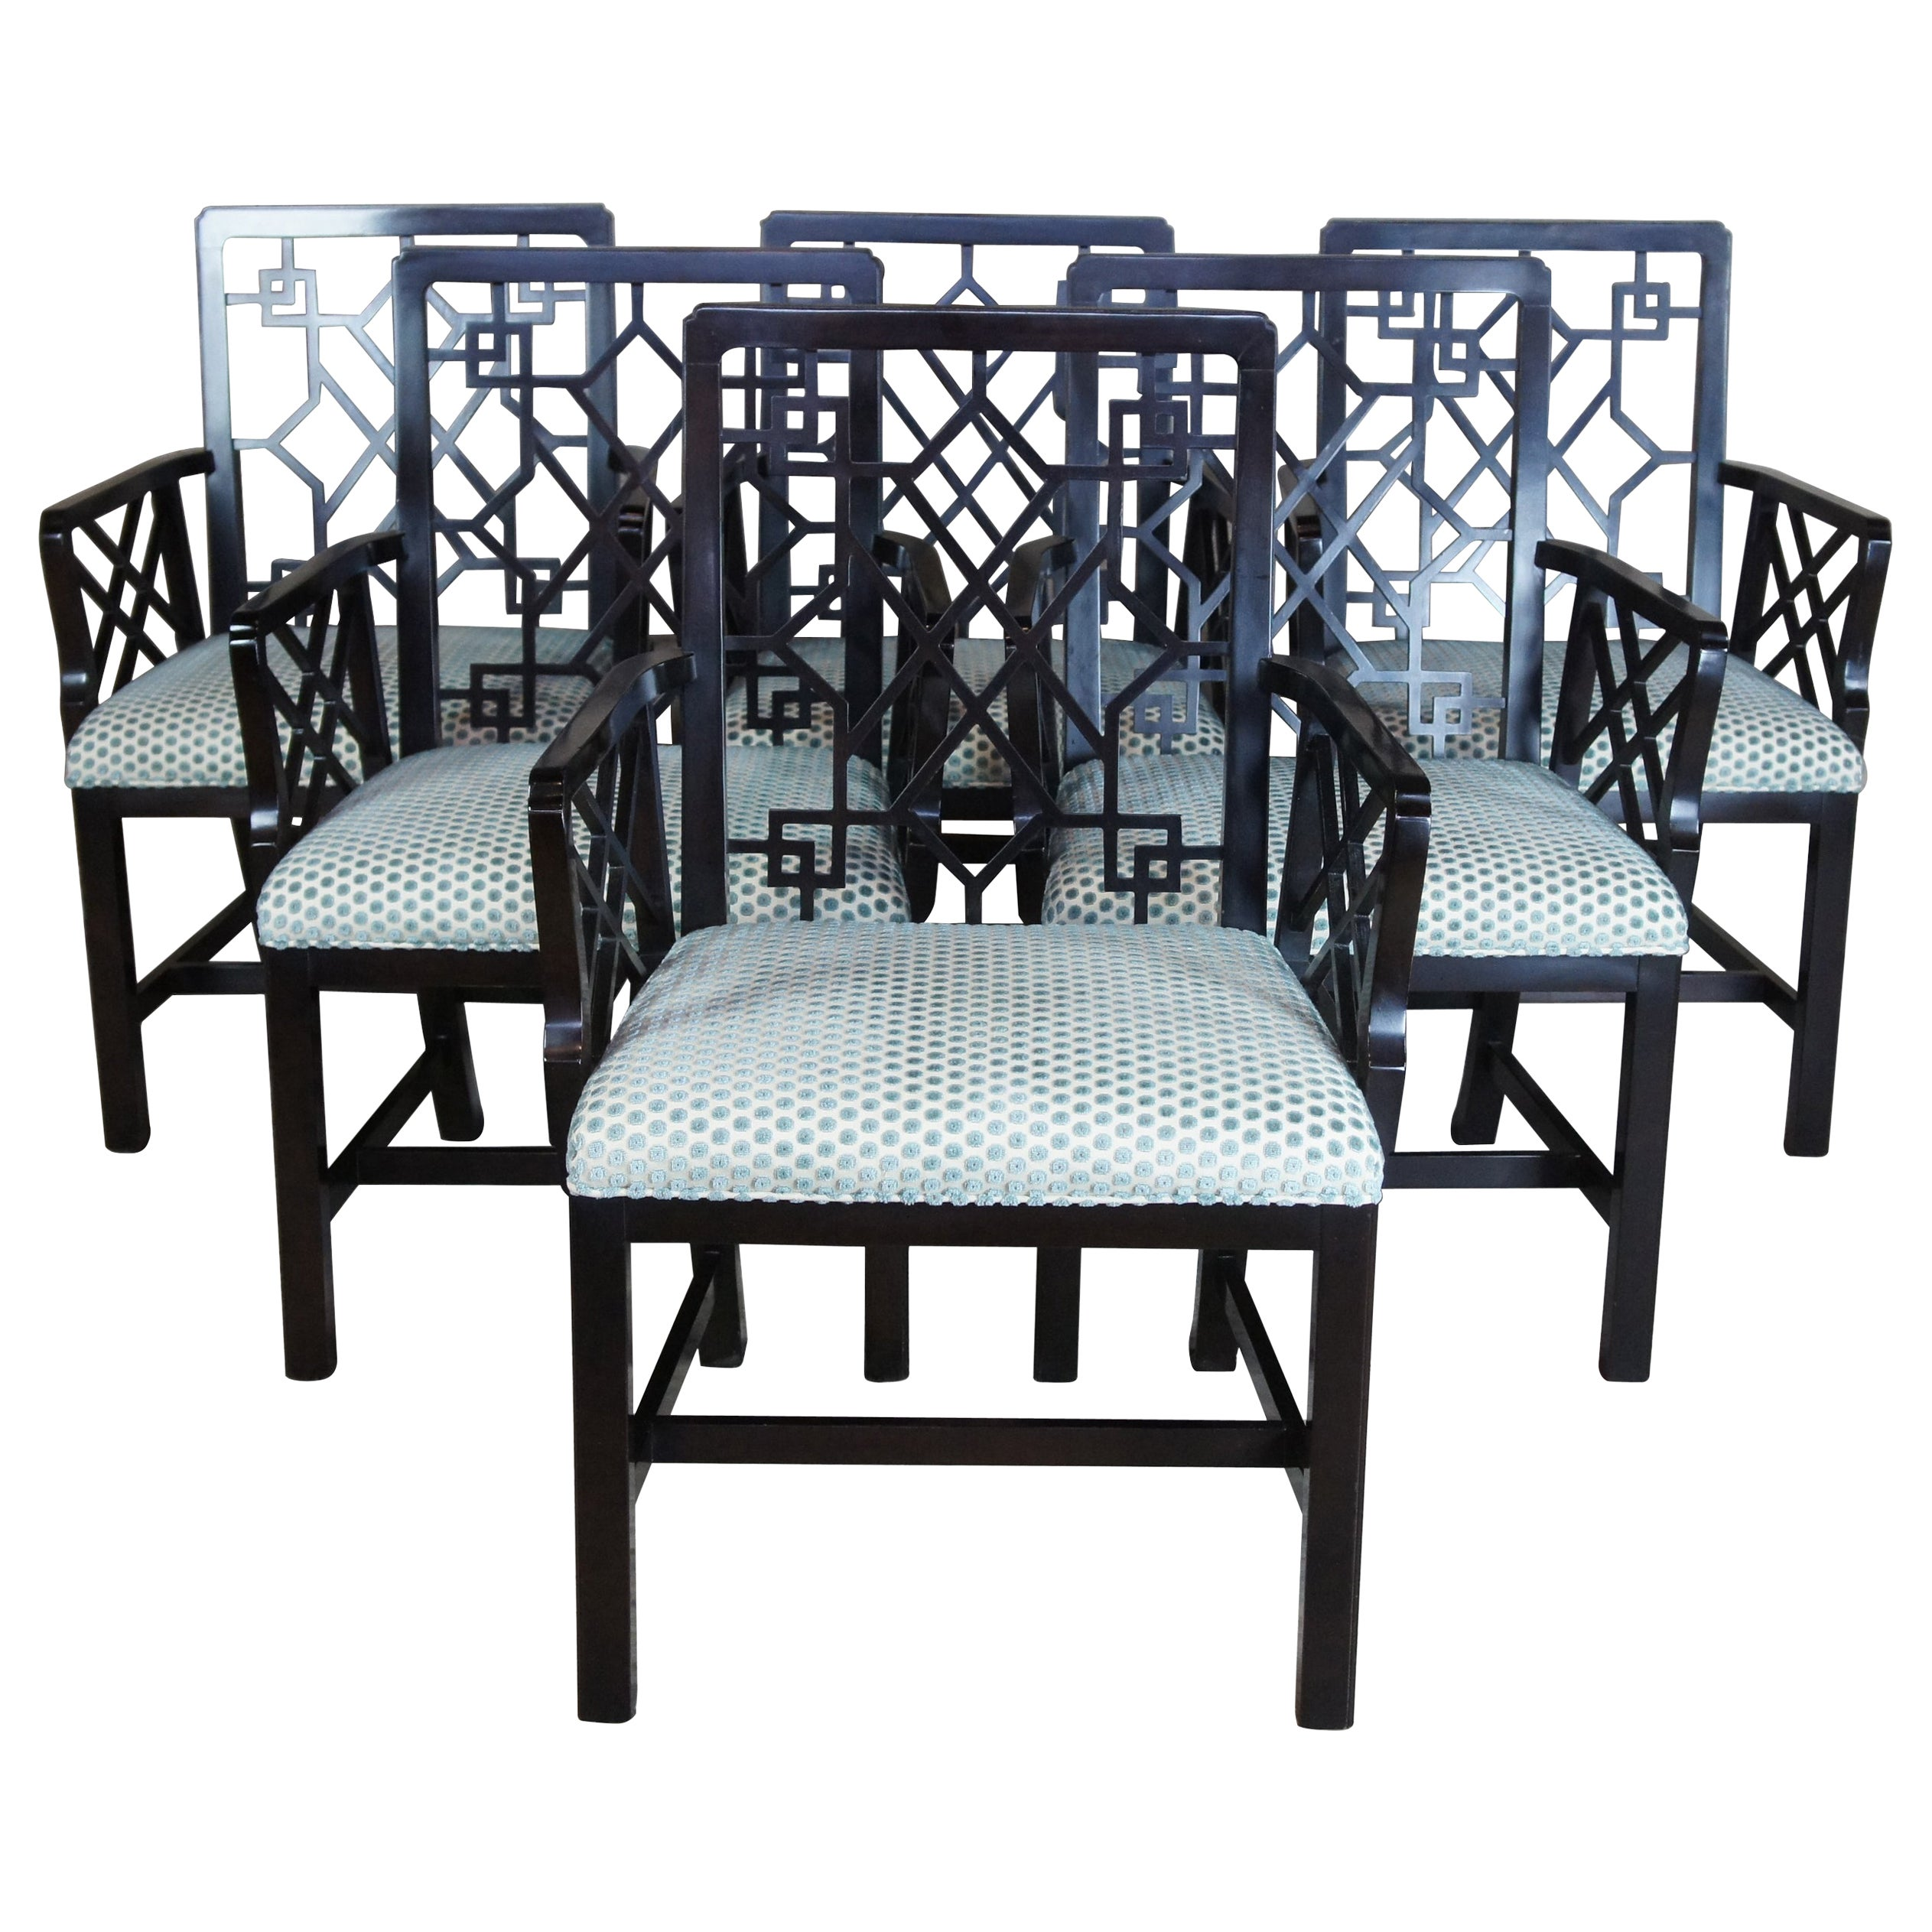 6 Baker Stately Homes Chinese Chippendale Lacquered Lattice-Back Dining Chairs